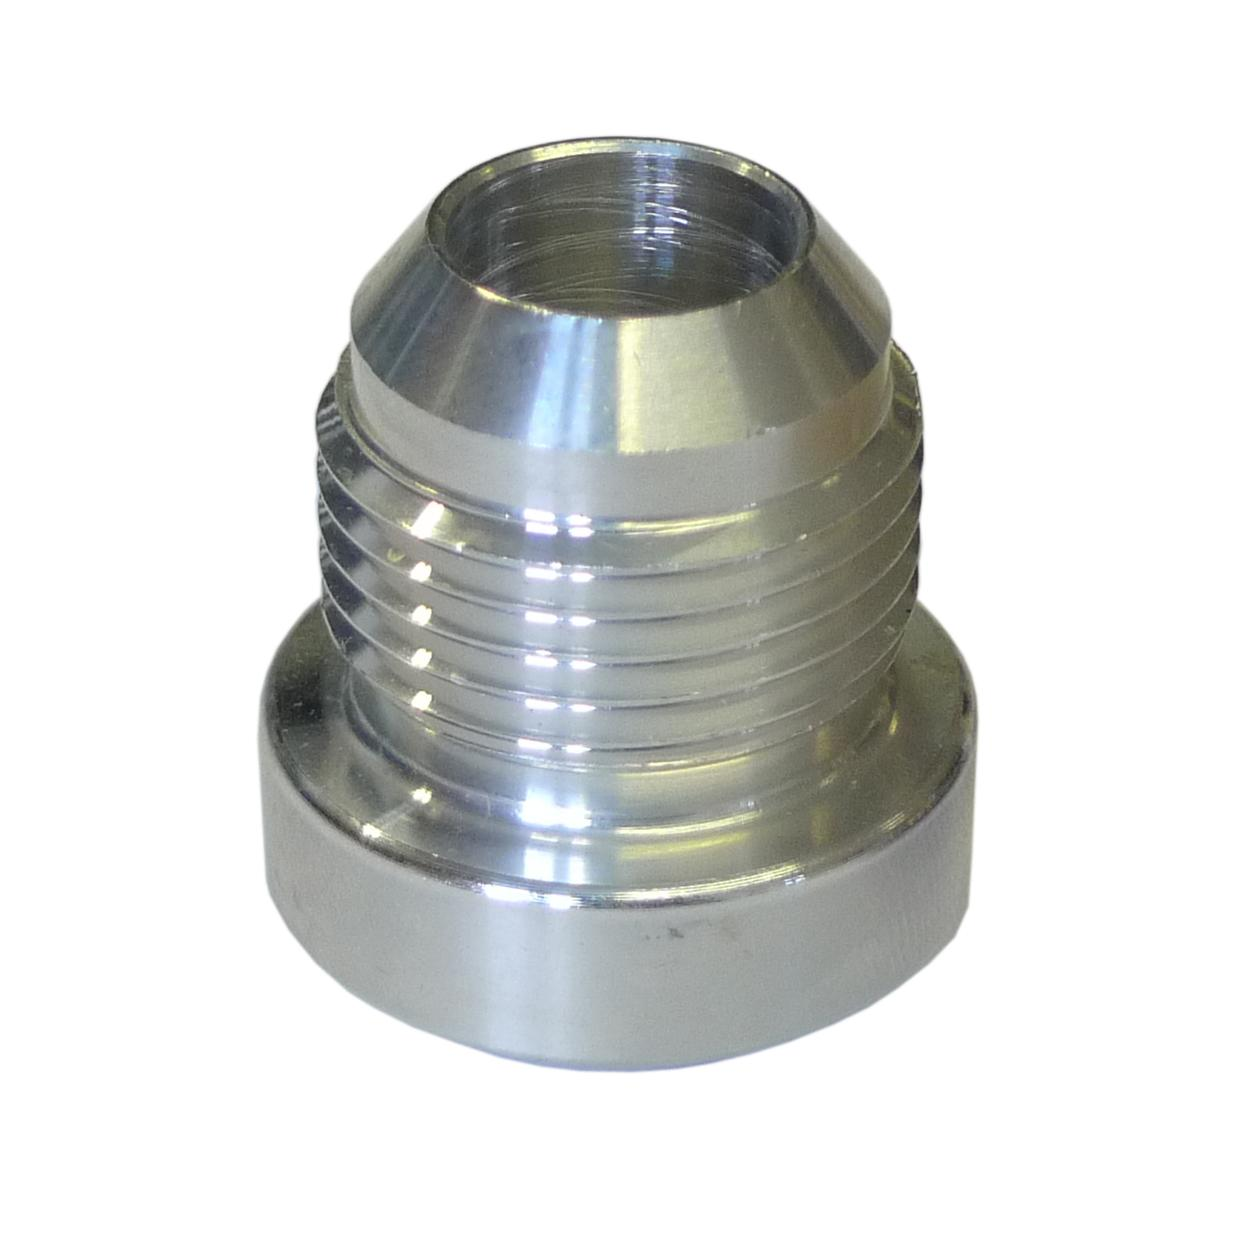 Jic 6 Round Male Fitting Weld On Fitting Alloy Fabrication